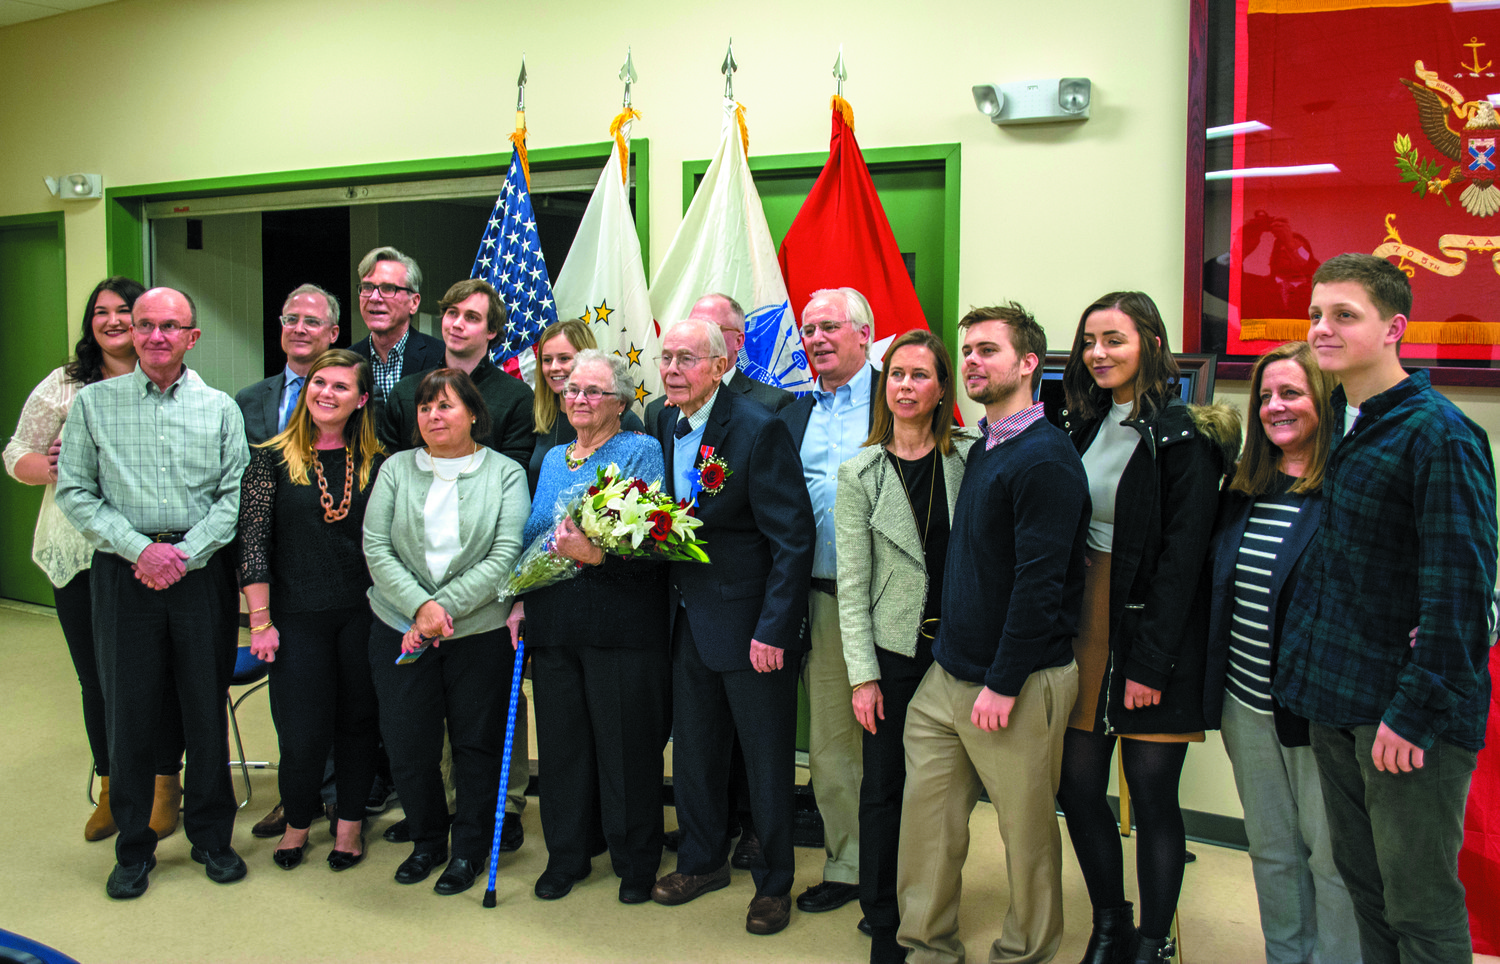 FAMILY OF A VETERAN: Willard Voigt's family proudly joins him as he receives military honors he earned during World War II.